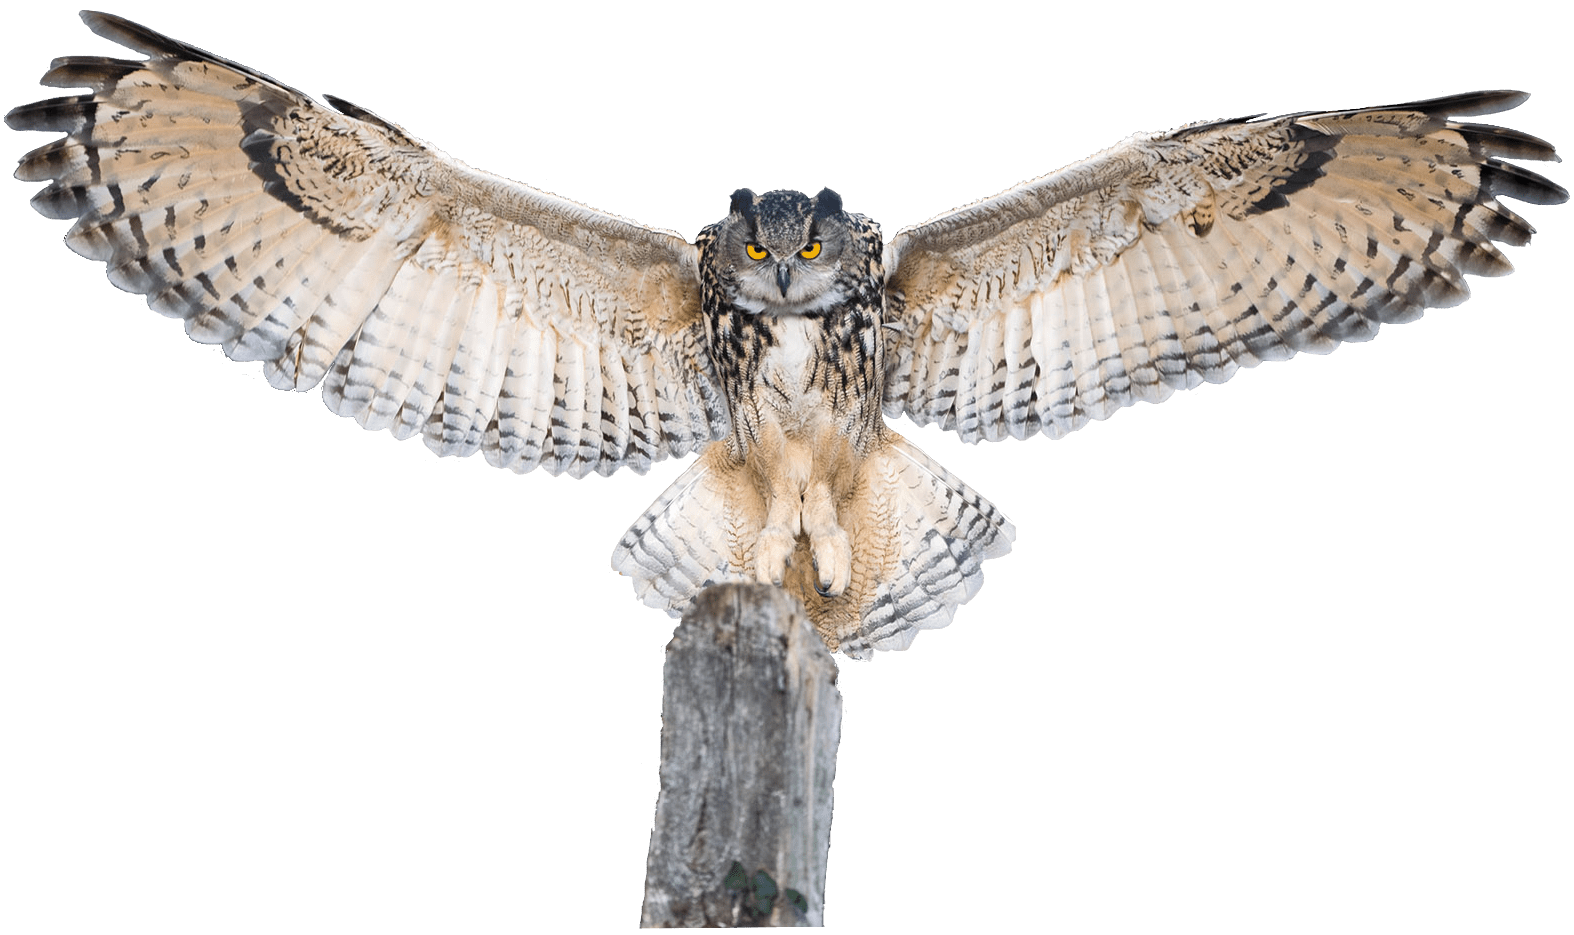 Owl wings png. Spreading transparent image mix